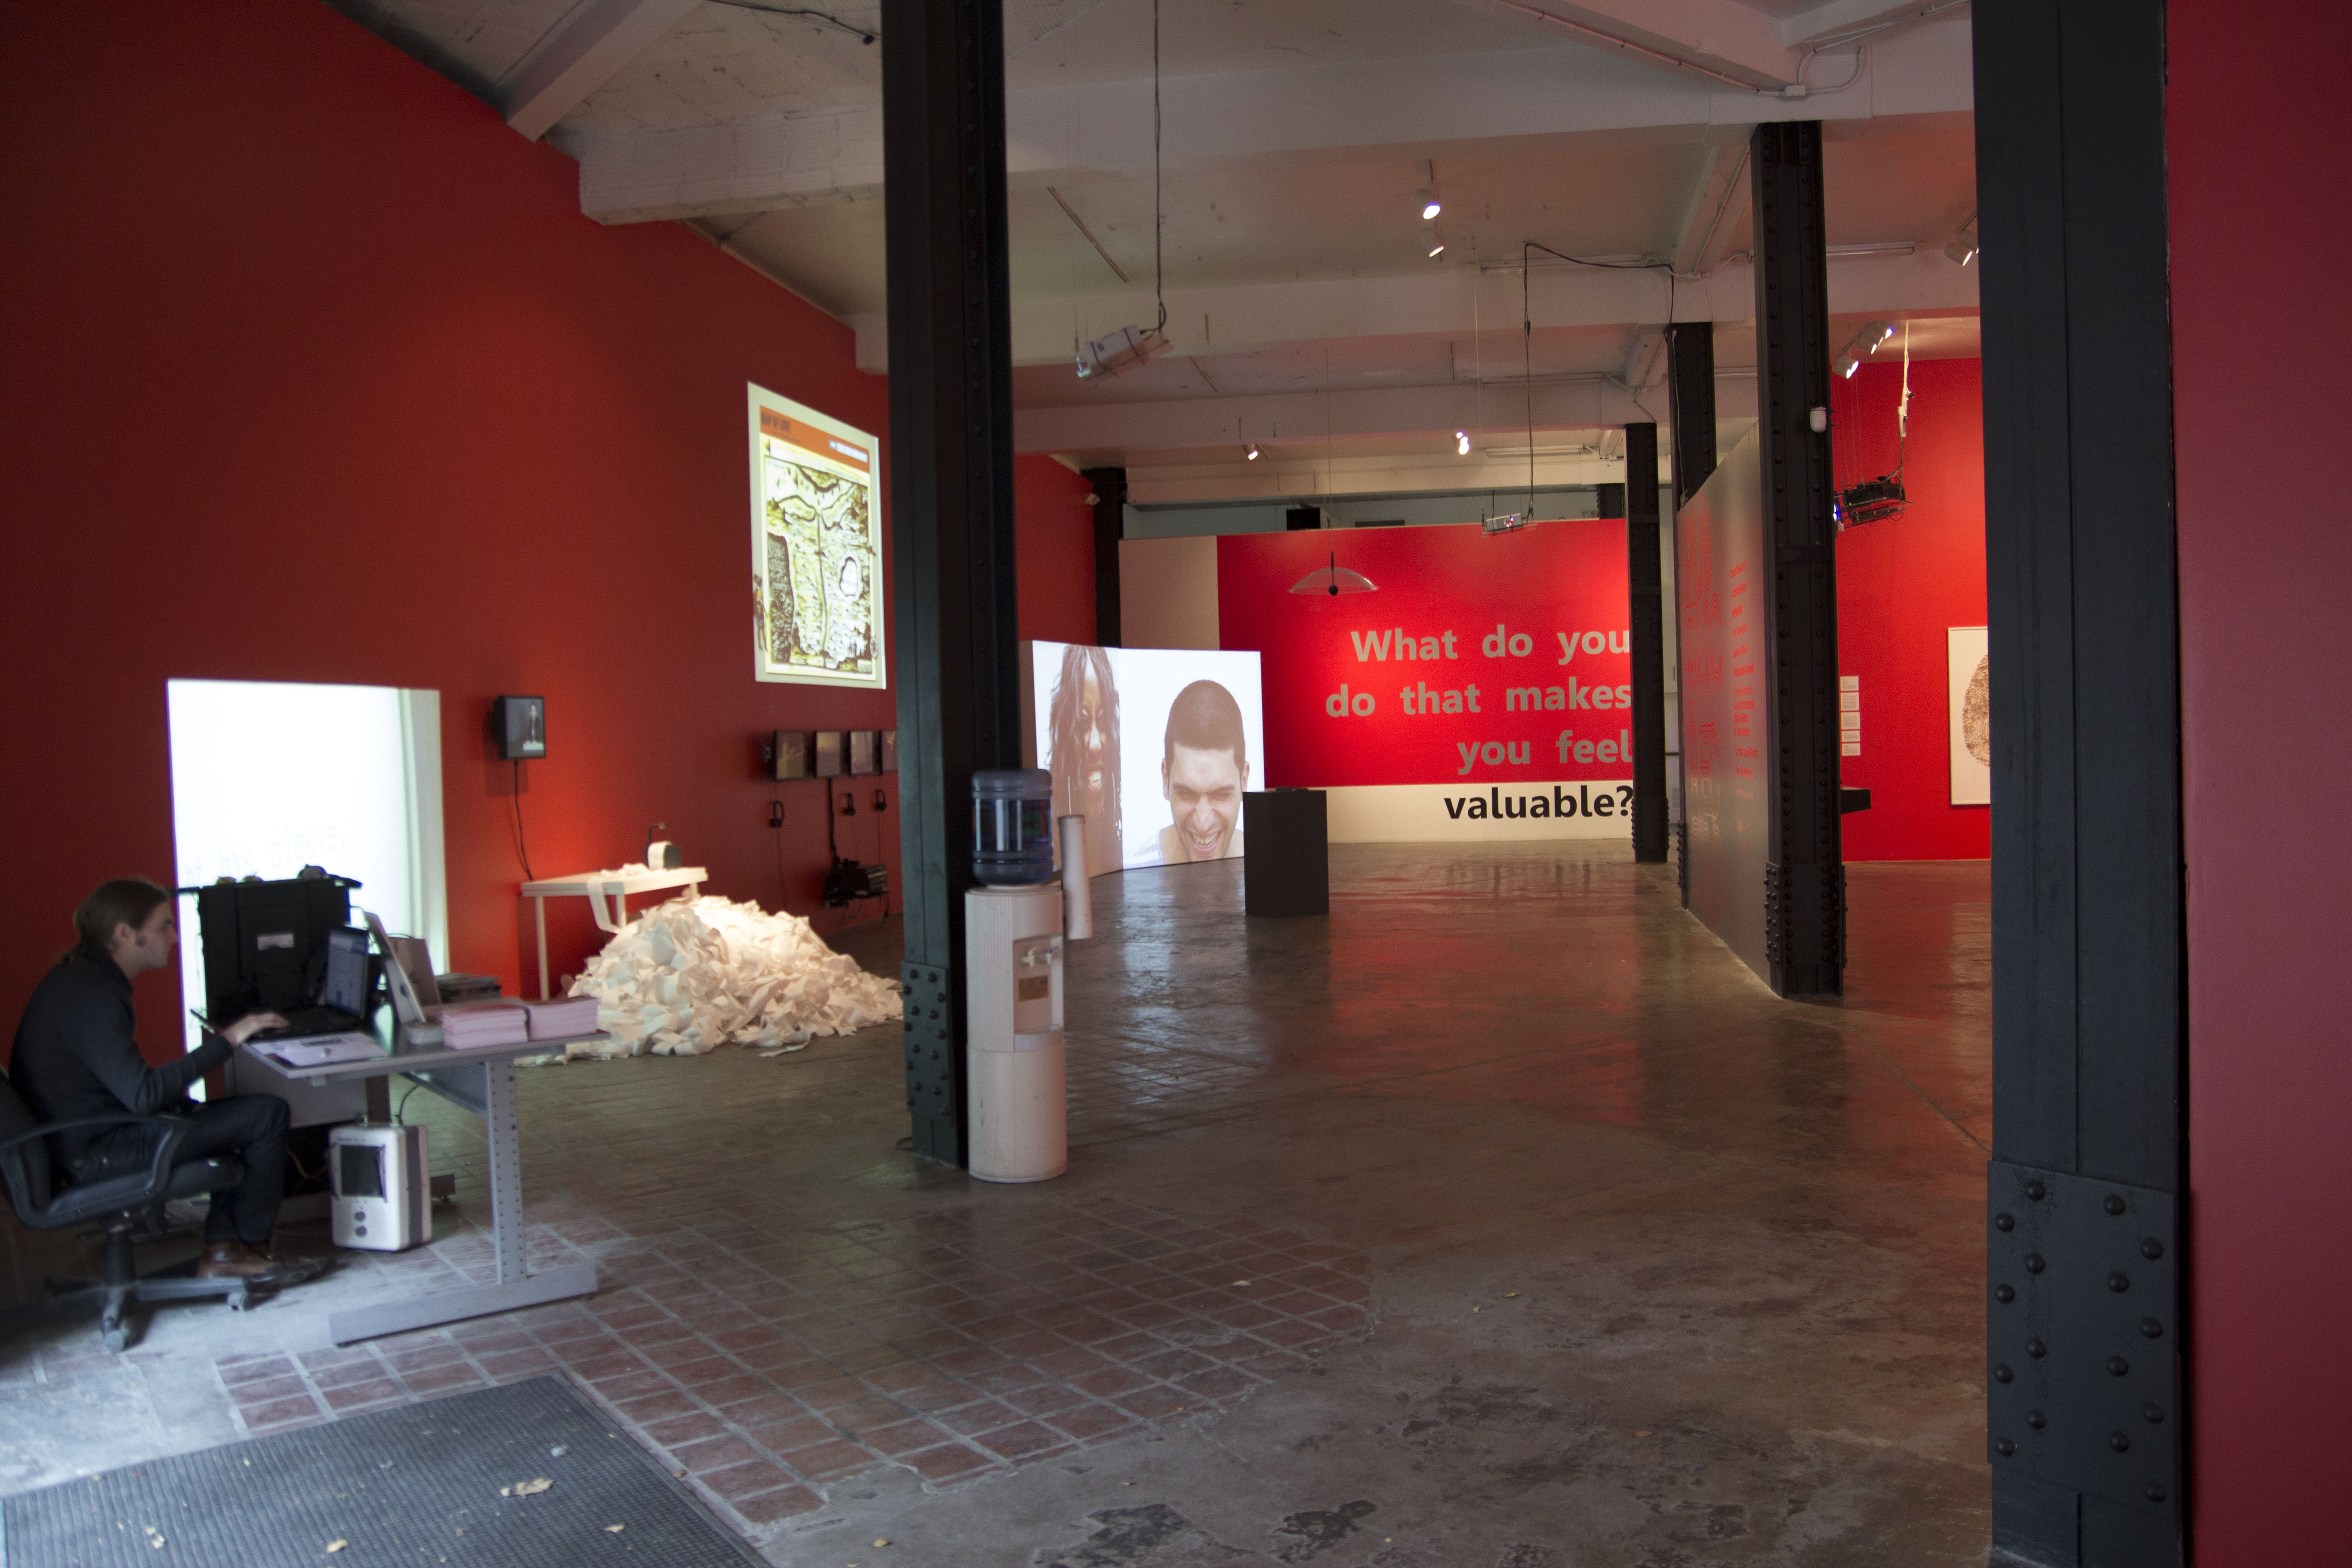 Big Red Gallery